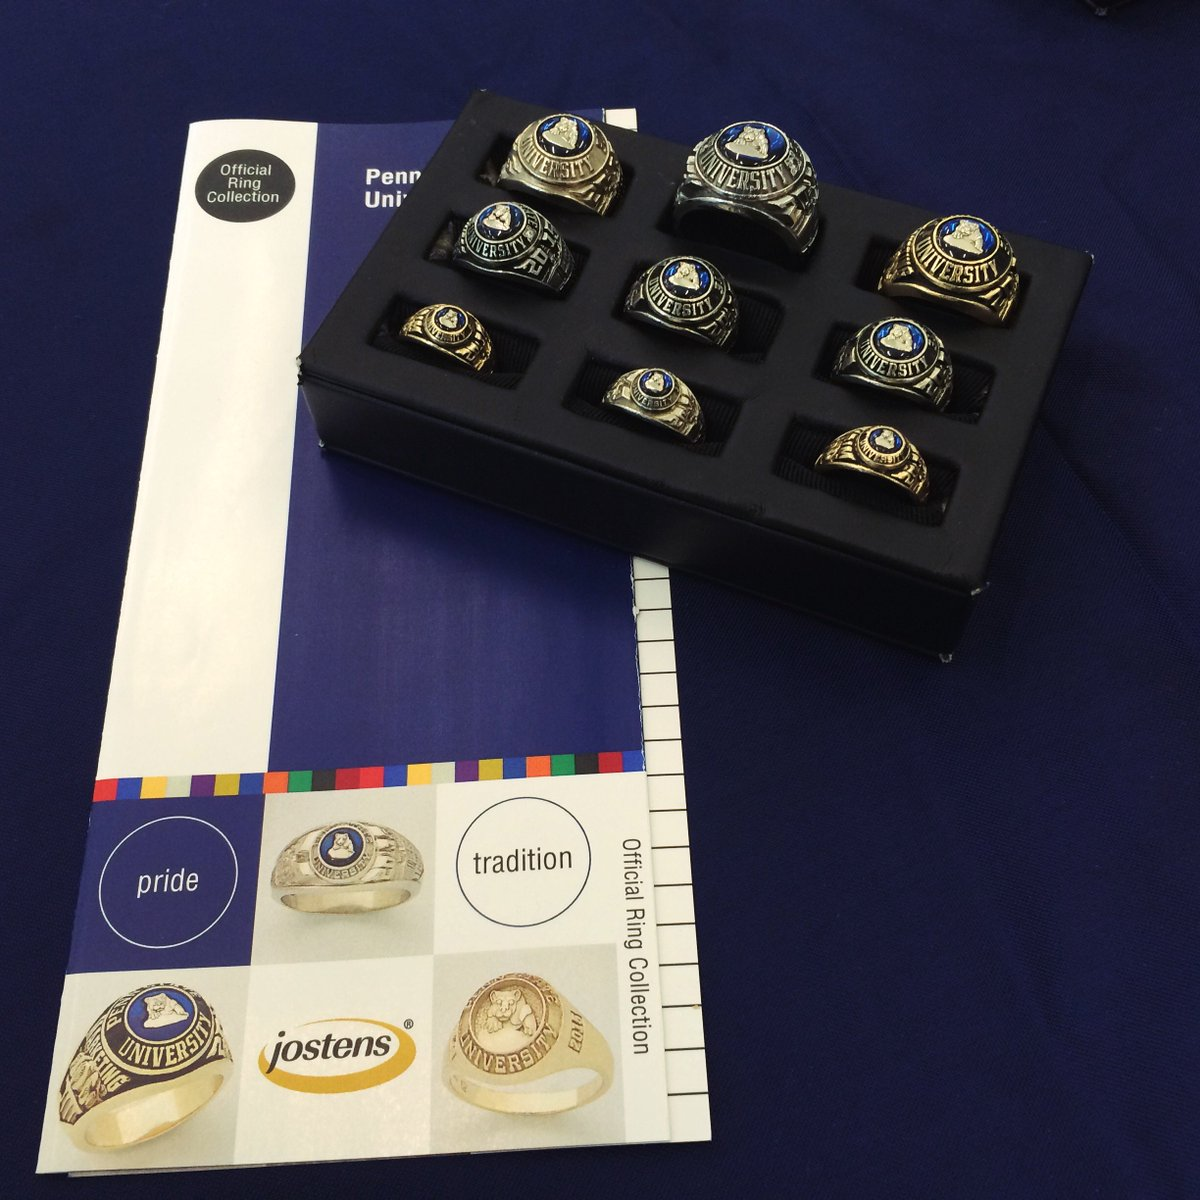 com bowl rings lions product replica ncaa from paterno joe team nittany penn football super dhgate state american